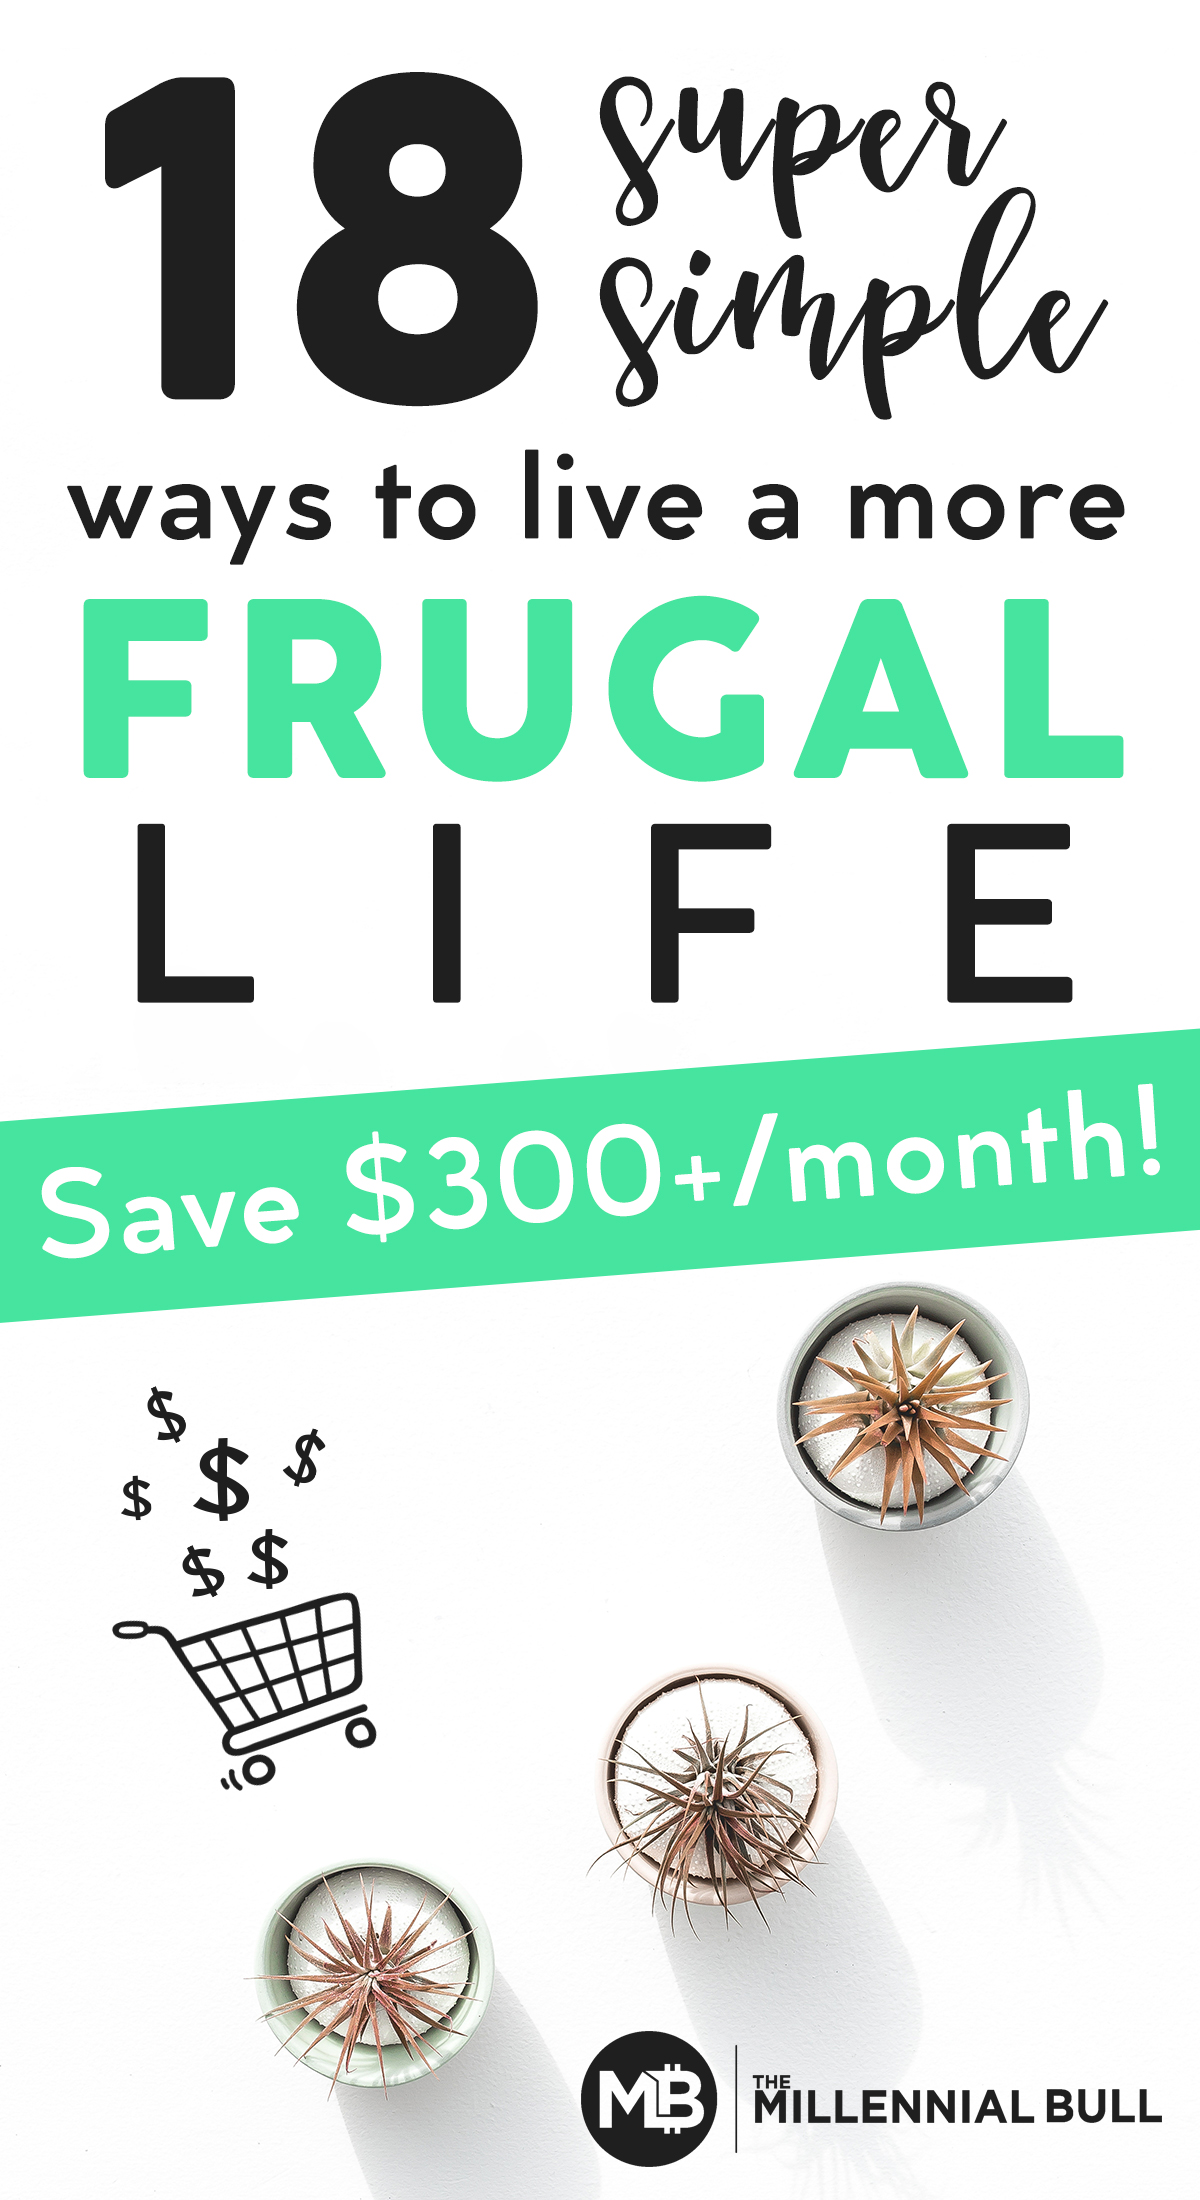 18 super simple ways to live a more frugal life. Learn easy life hacks to save money in live more frugally at home, so you can start gaining control of your personal finances and achieve financial freedom. #frugalliving #frugalhacks #frugallivingtips #frugality